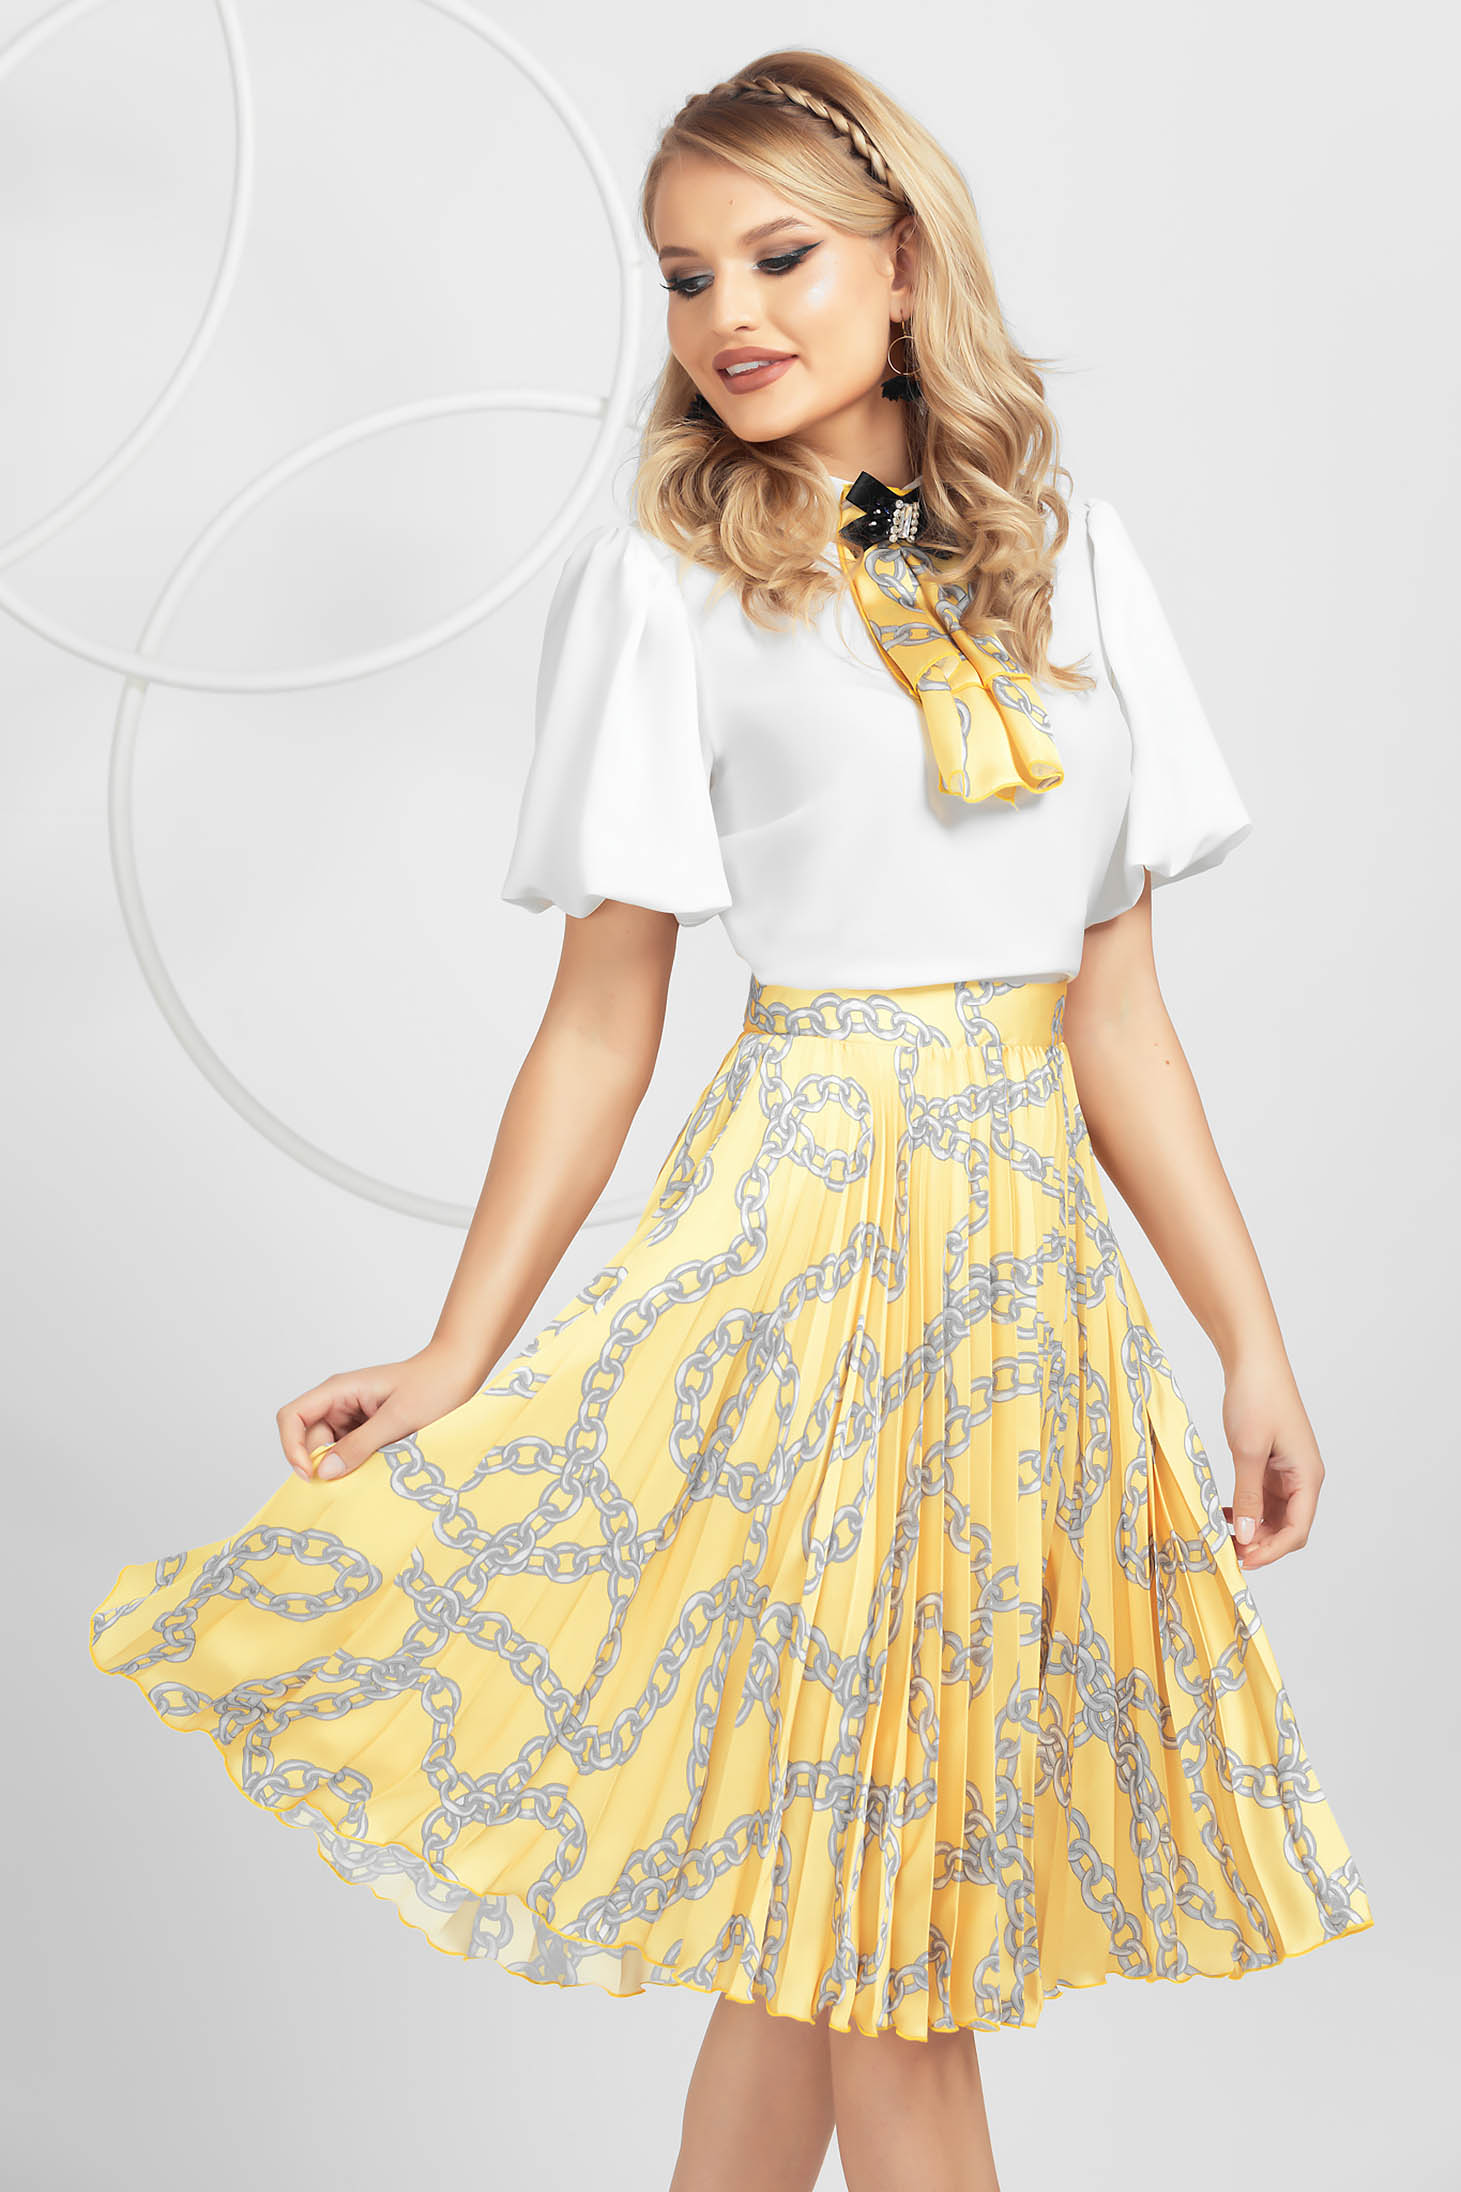 Yellow skirt airy fabric with floral print with elastic waist pleats of material